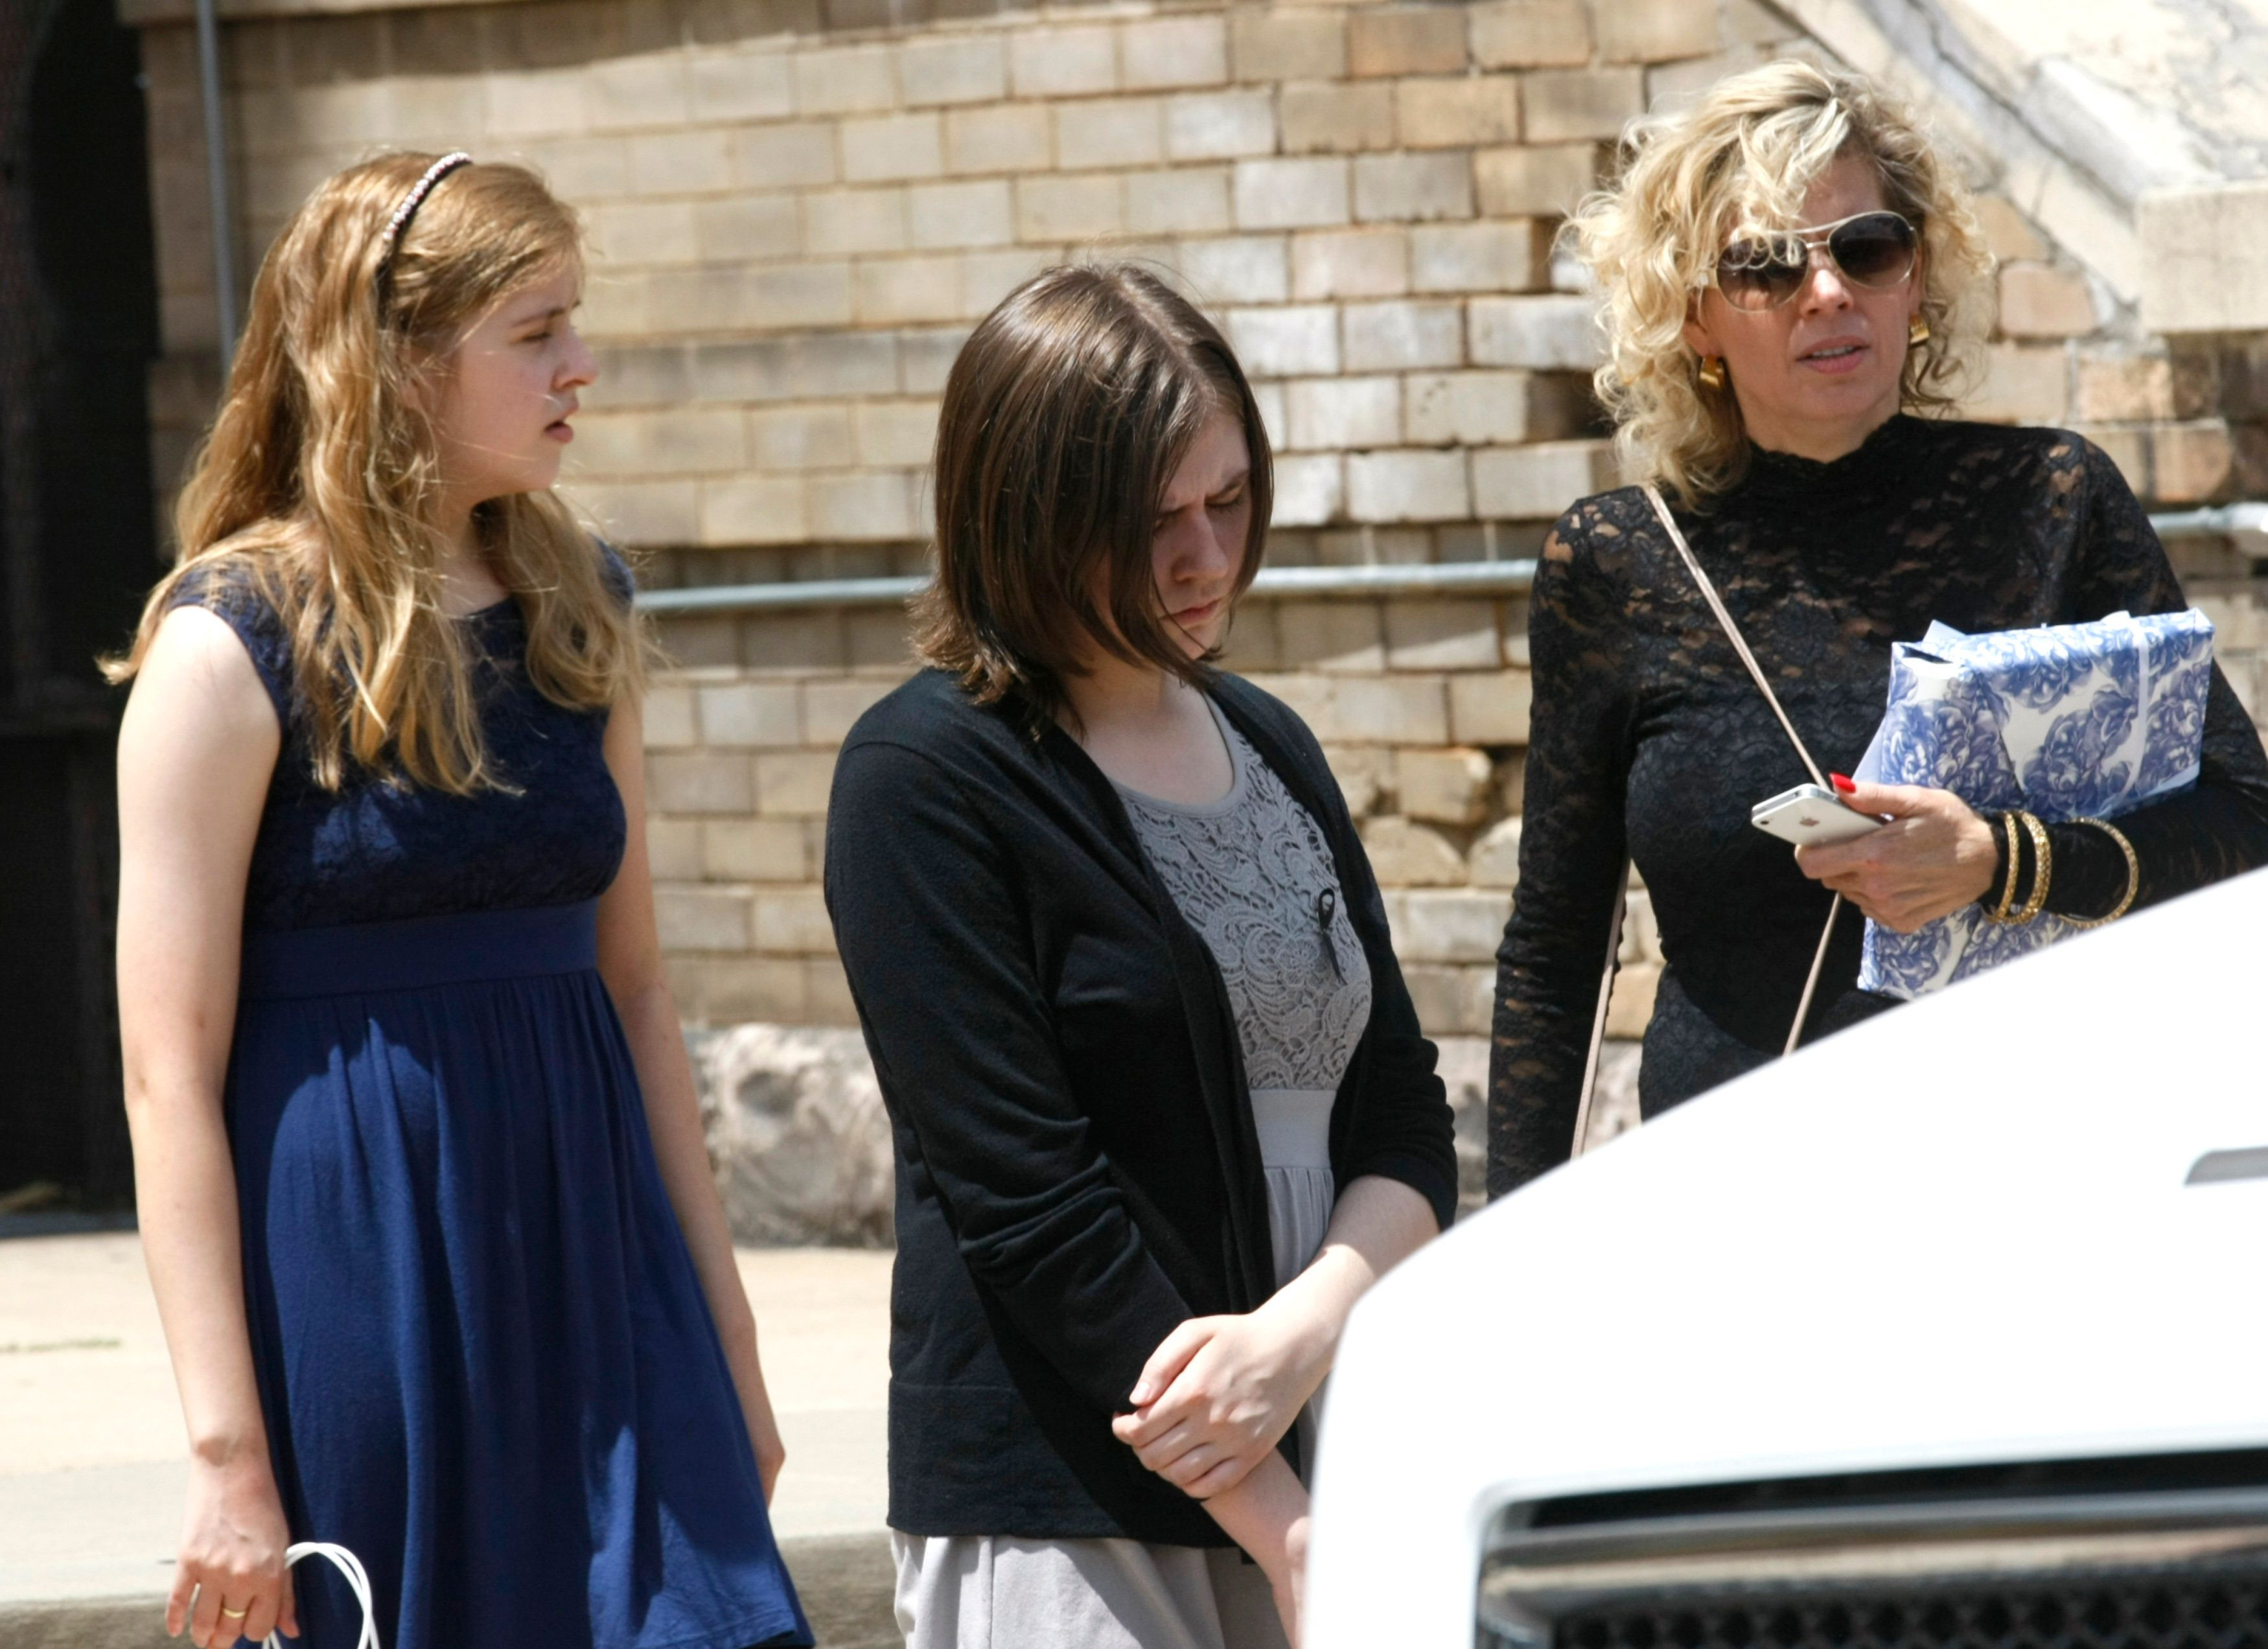 "Two daughters of Gordon Cowden and his ex-wife (R) leave his memorial service at Pathways church in Denver July 25, 2012. The man accused of the shooting rampage in a Denver-area screening of the latest ""Batman"" movie mailed a notebook detailing his plans to a psychiatrist days before the attack, FoxNews.com reported on Wednesday. Cowden, along with 11 others, was killed at a movie theater in Aurora, Colorado last Friday. The daughters are Kristian, Brooke and Cierra.  REUTERS/Rick Wilking (UNITED STATES - Tags: DISASTER POLITICS CRIME LAW)"